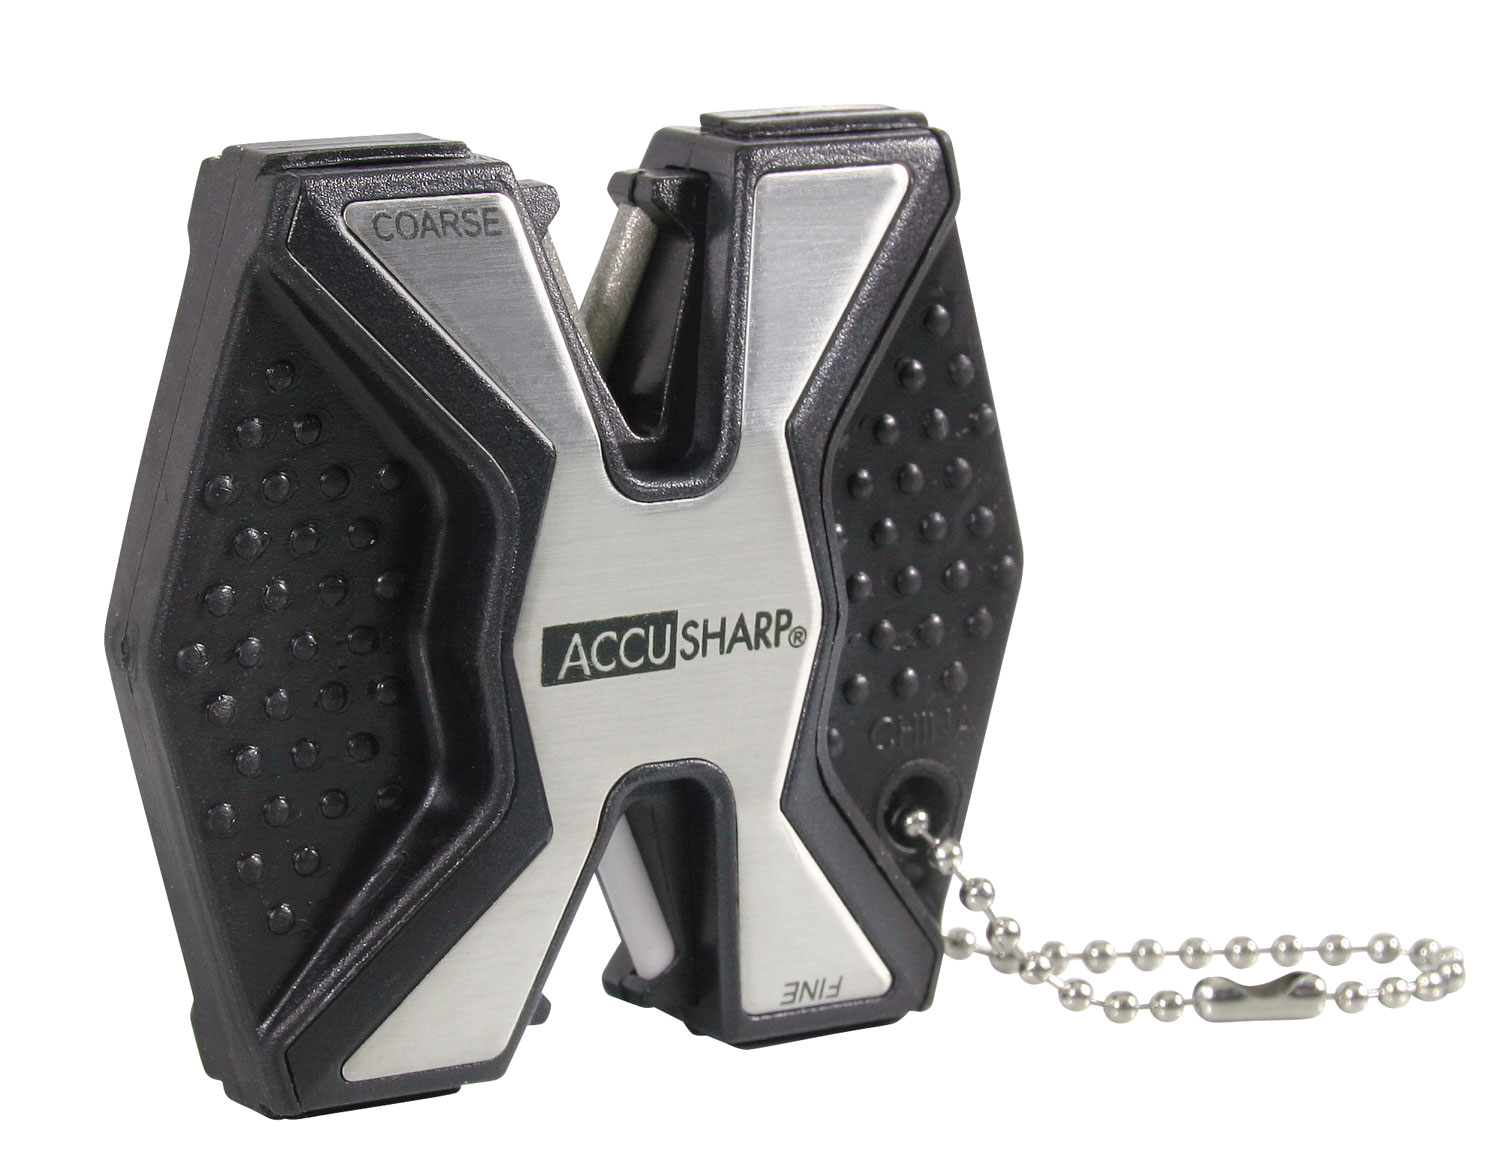 AccuSharp Diamond PRO 2-Step Knife Sharpener